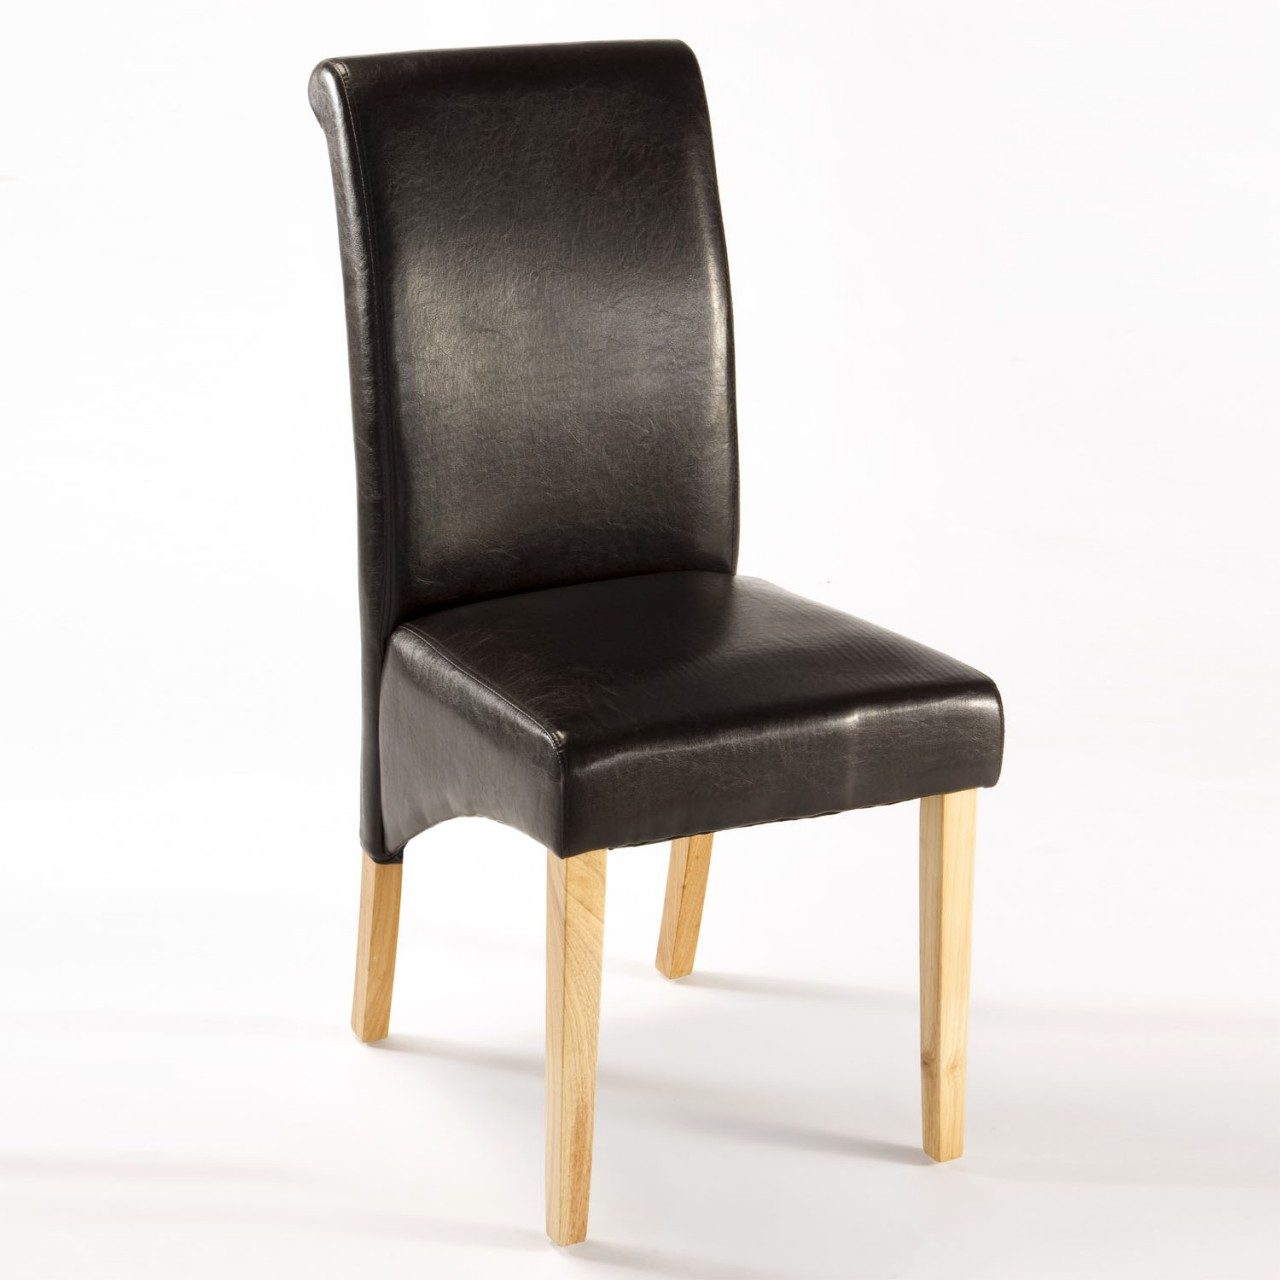 Beige leather dining chairs vida living exclusive for Black leather dining chairs